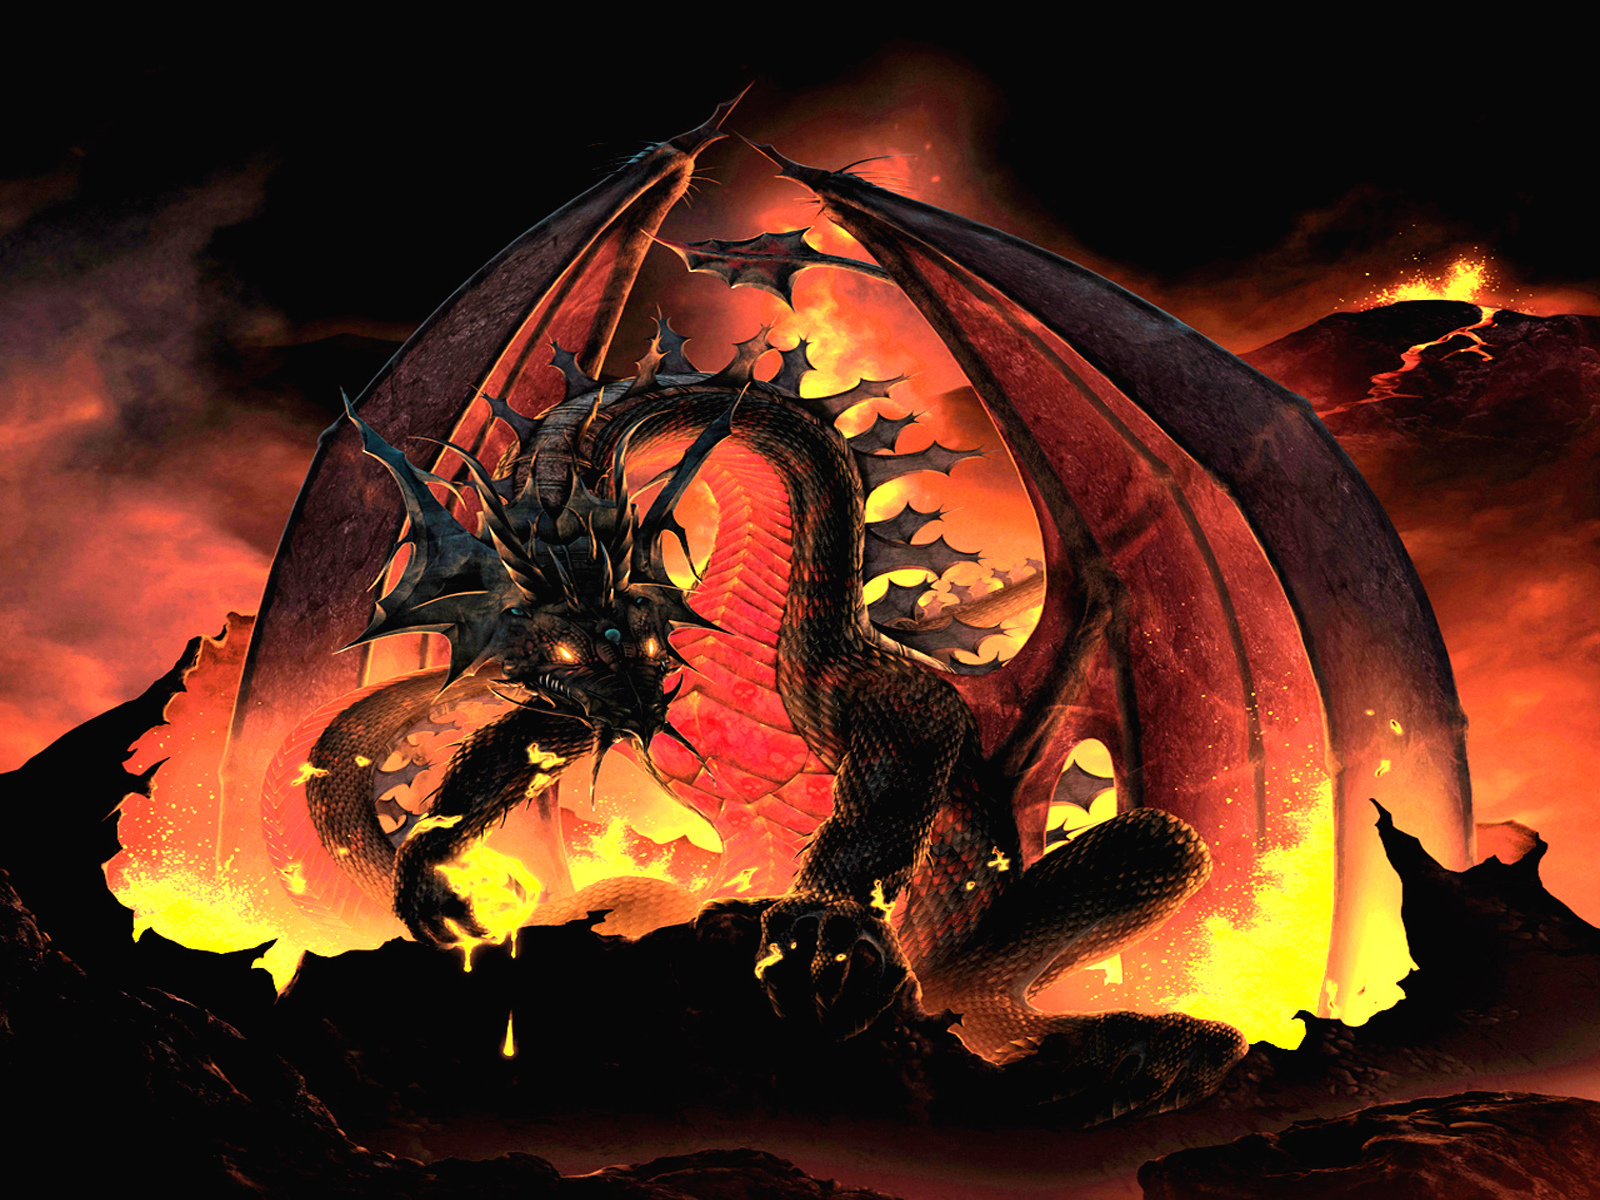 Fondos de pantalla de dragones wallpapers hd gratis for Wallpapers hd gratis